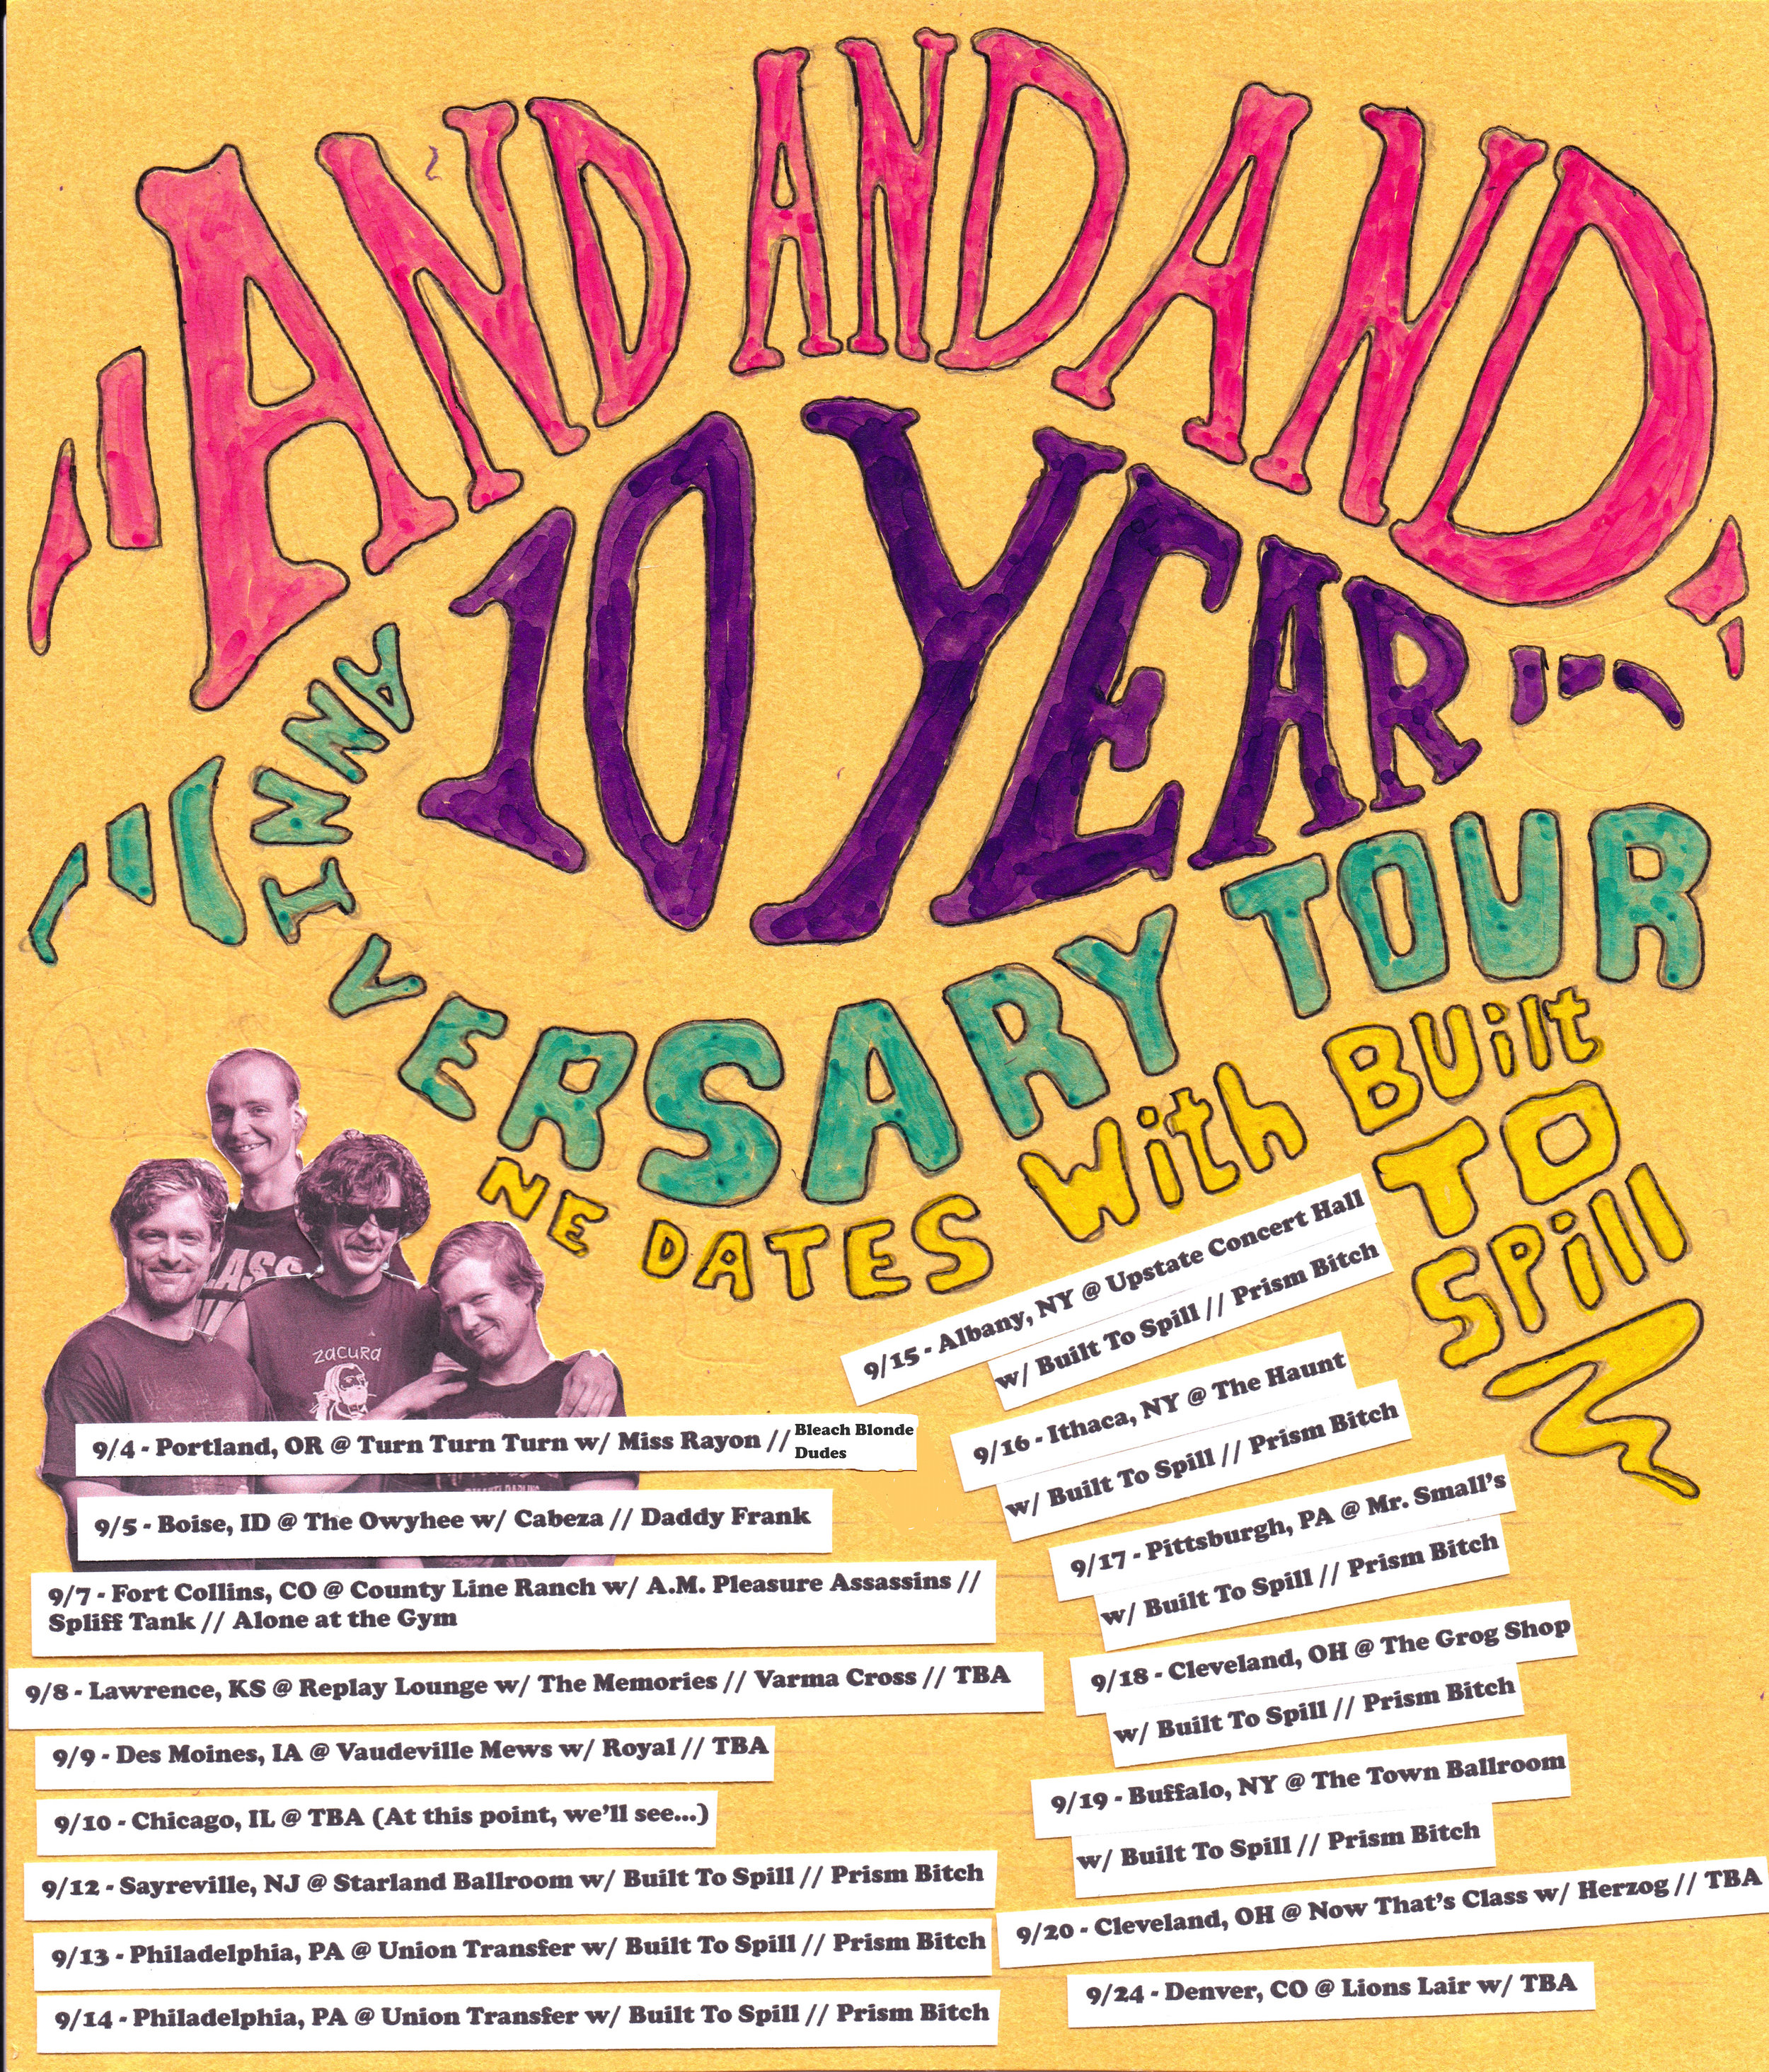 Holy shit! Ten year anniversary and a bunch of tour dates with Built To Spill!